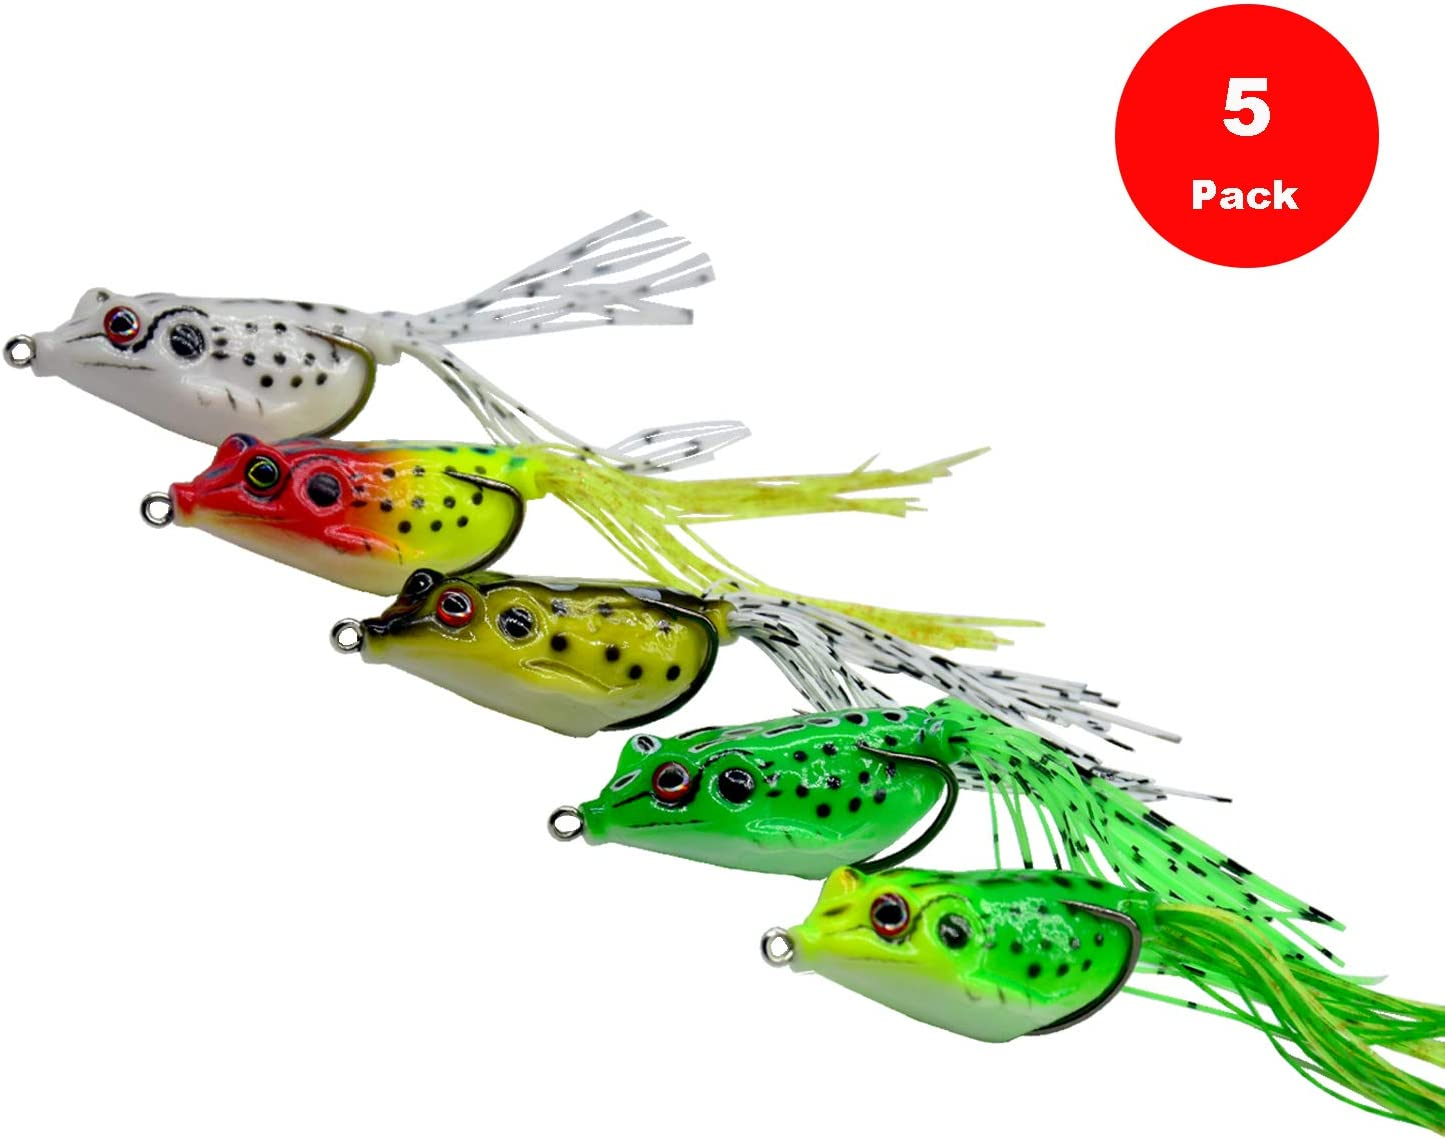 Online limited product Yosawa 5-Pieces OFFicial store Fishing Lures Topwater Frog with Floating Baits